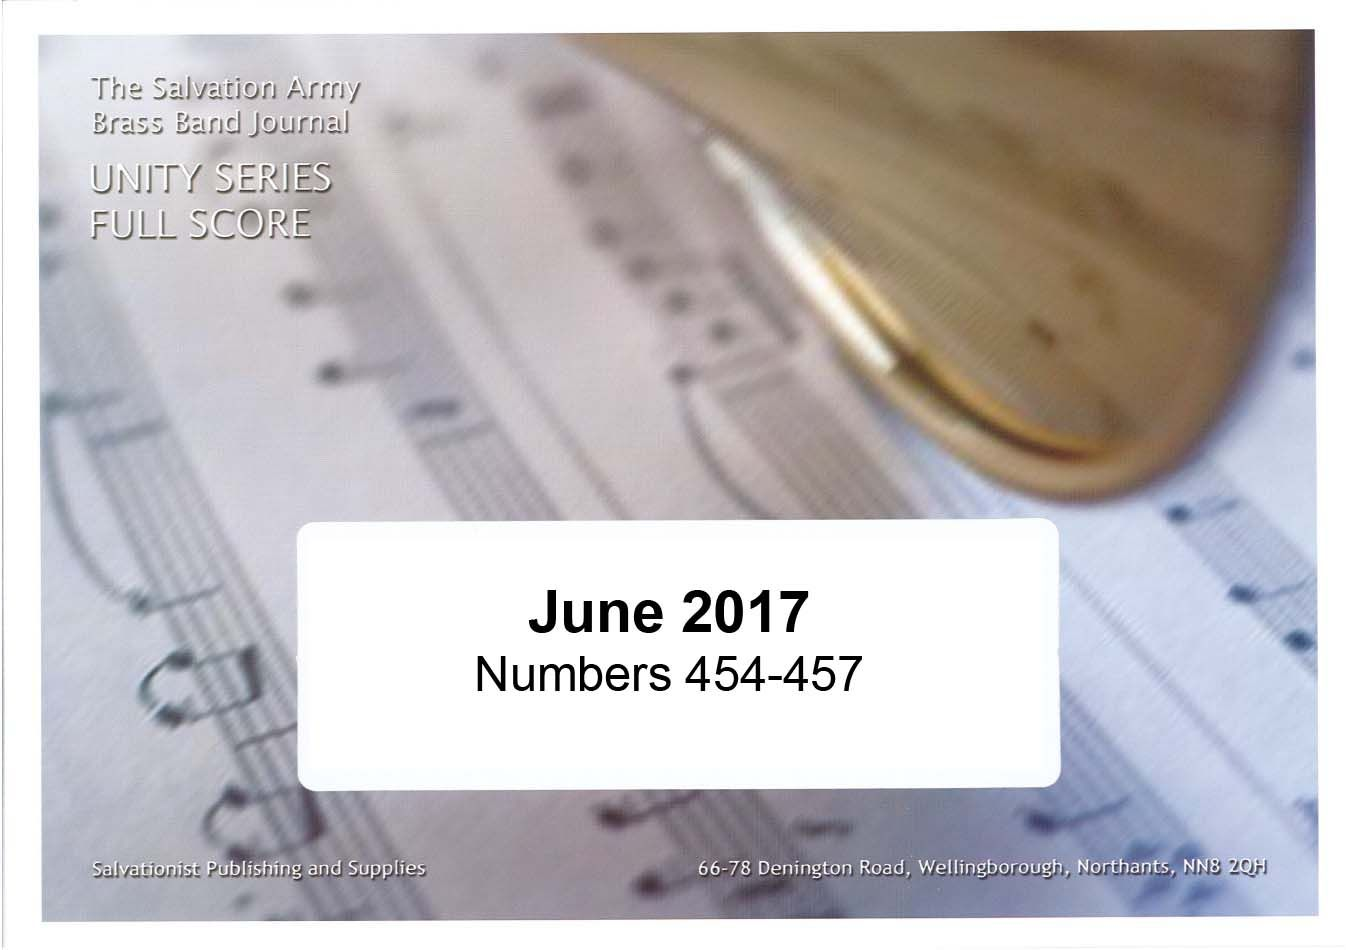 Unity Series Band Journal June 2017 Numbers 454 - 457